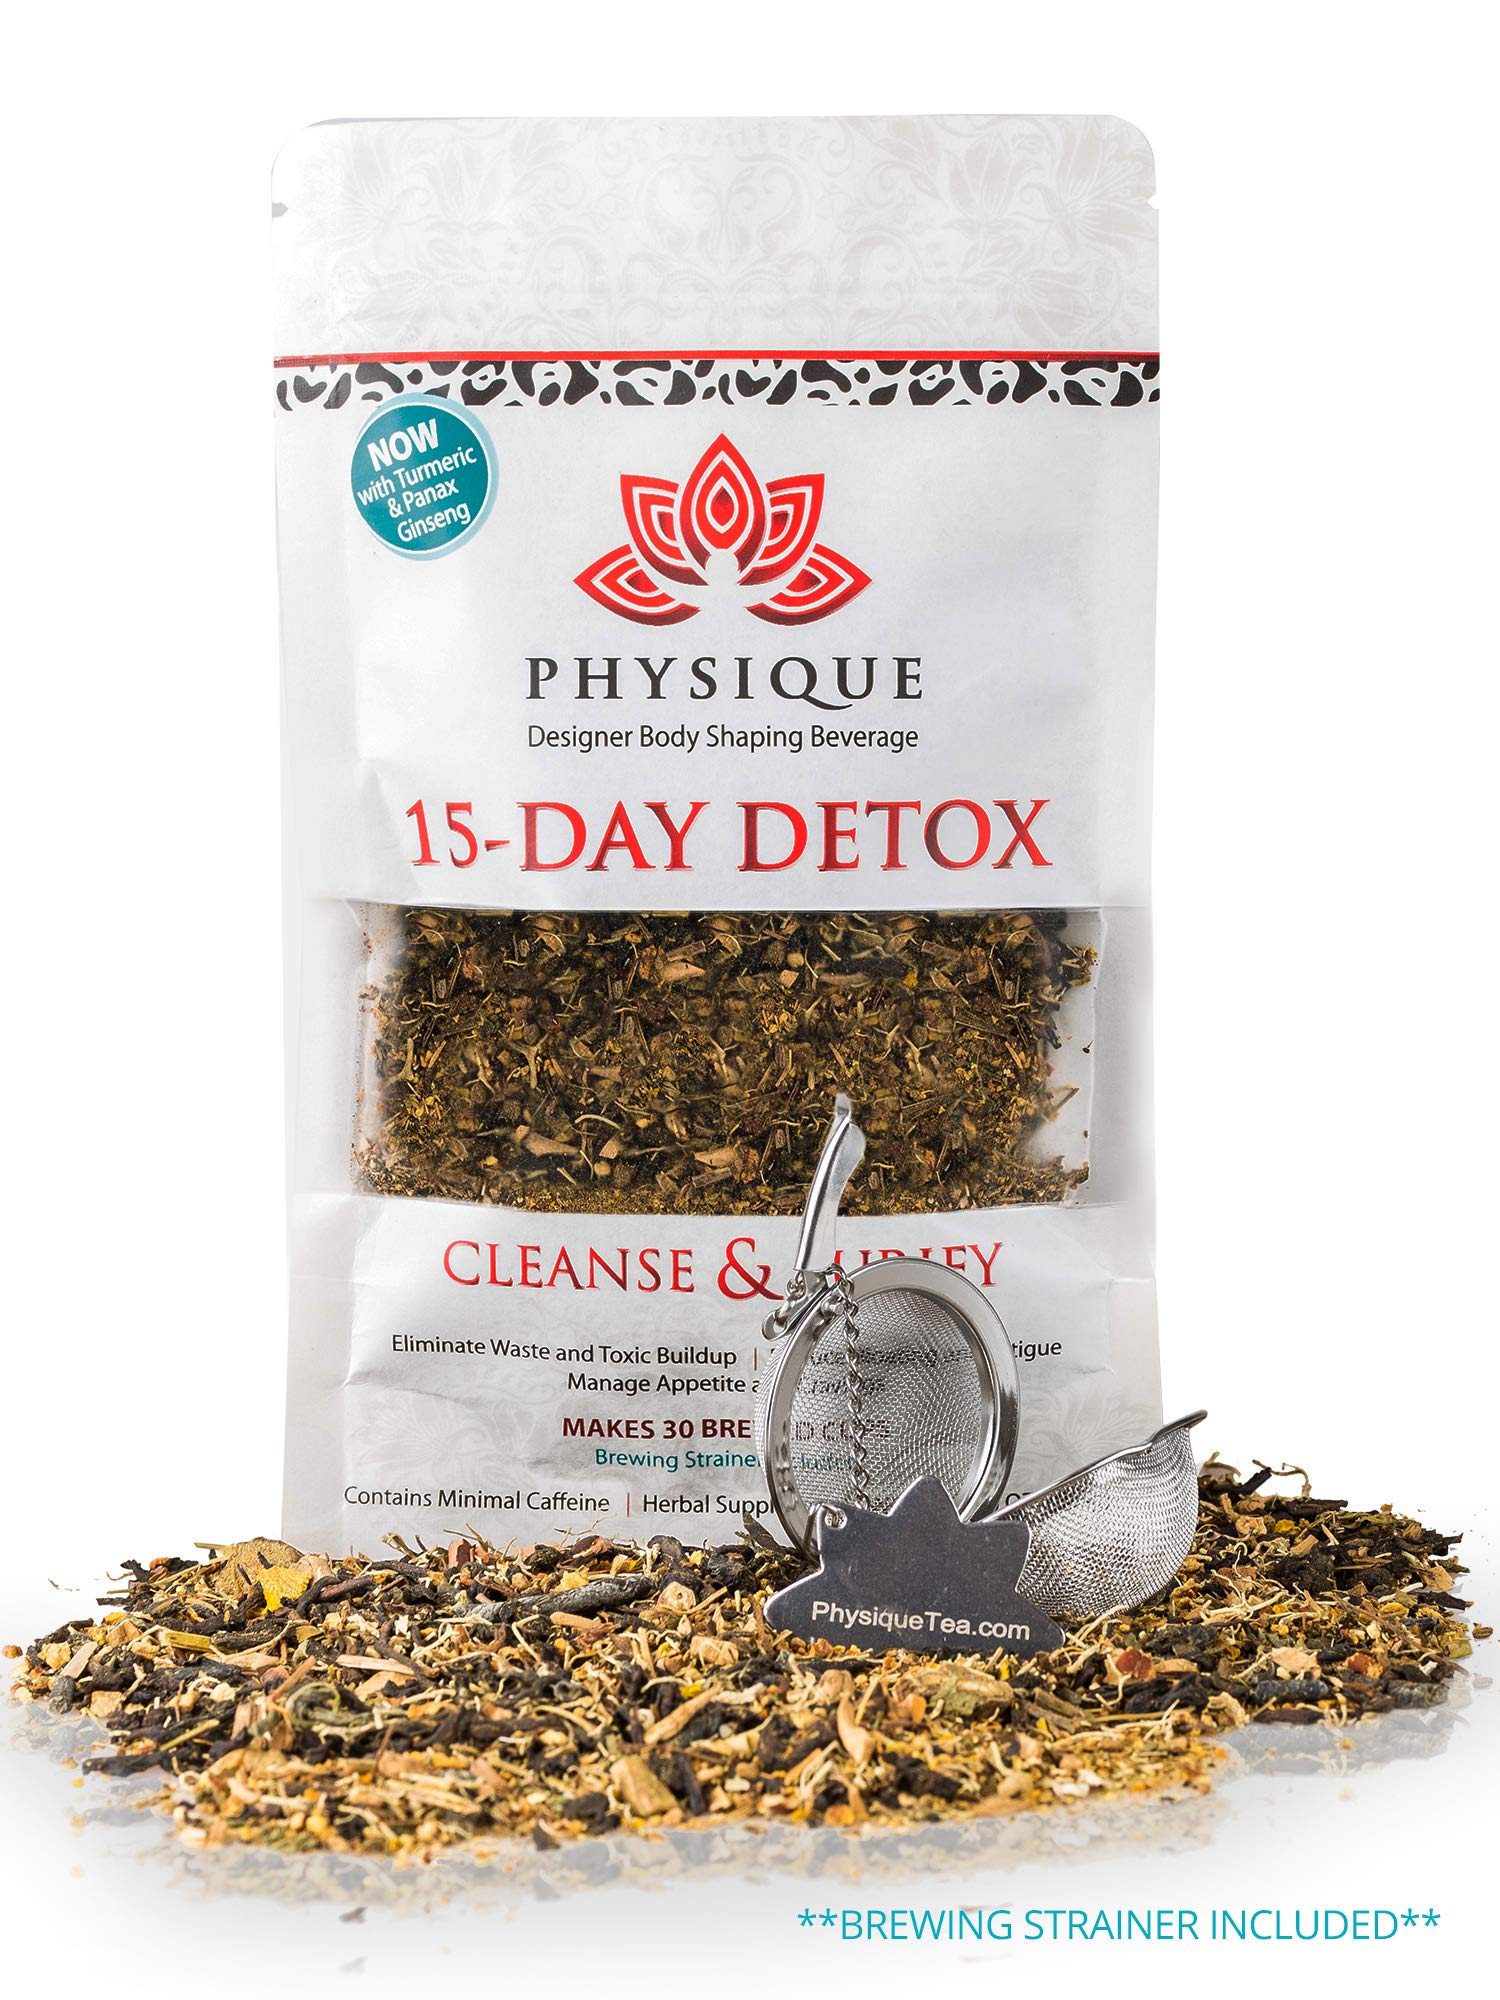 15 Day Total Body Cleanse and Weight Loss Tea | Reduce Bloating & Hunger | Garcinia Cambogia & Turmeric Premium Blend | Anti-Inflammatory & Laxative Free Teatox | Free Strainer & Detox Diet Included